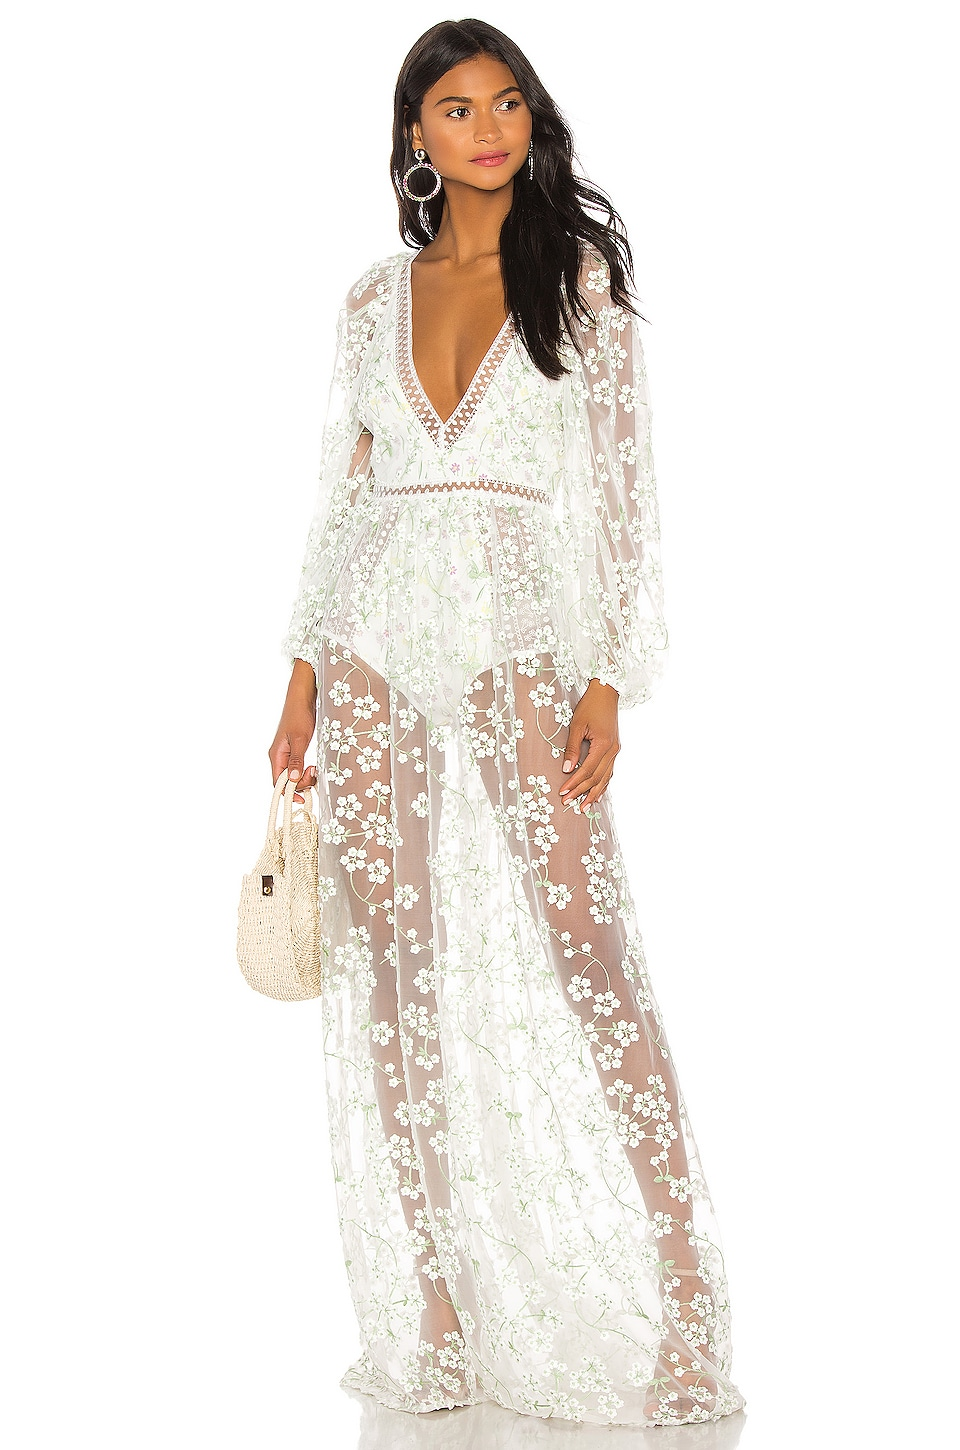 For Love & Lemons Eclair Maxi Dress in Ivory Floral